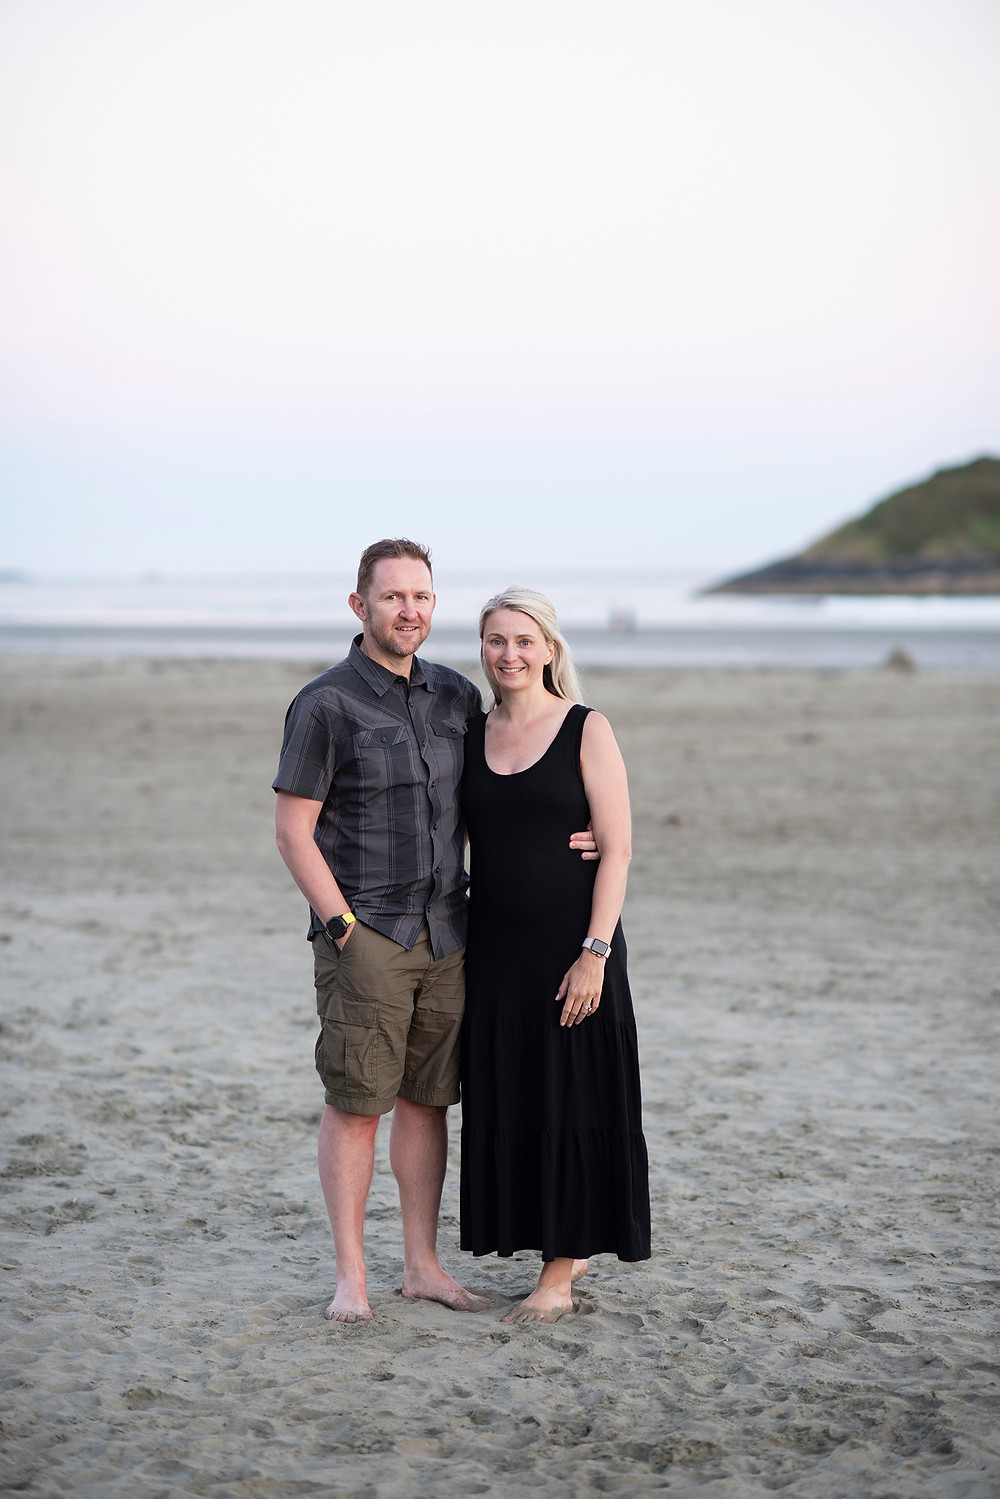 Parents stand together on the beach during family photos in Tofino. Photographed by Kaitlyn Shea.